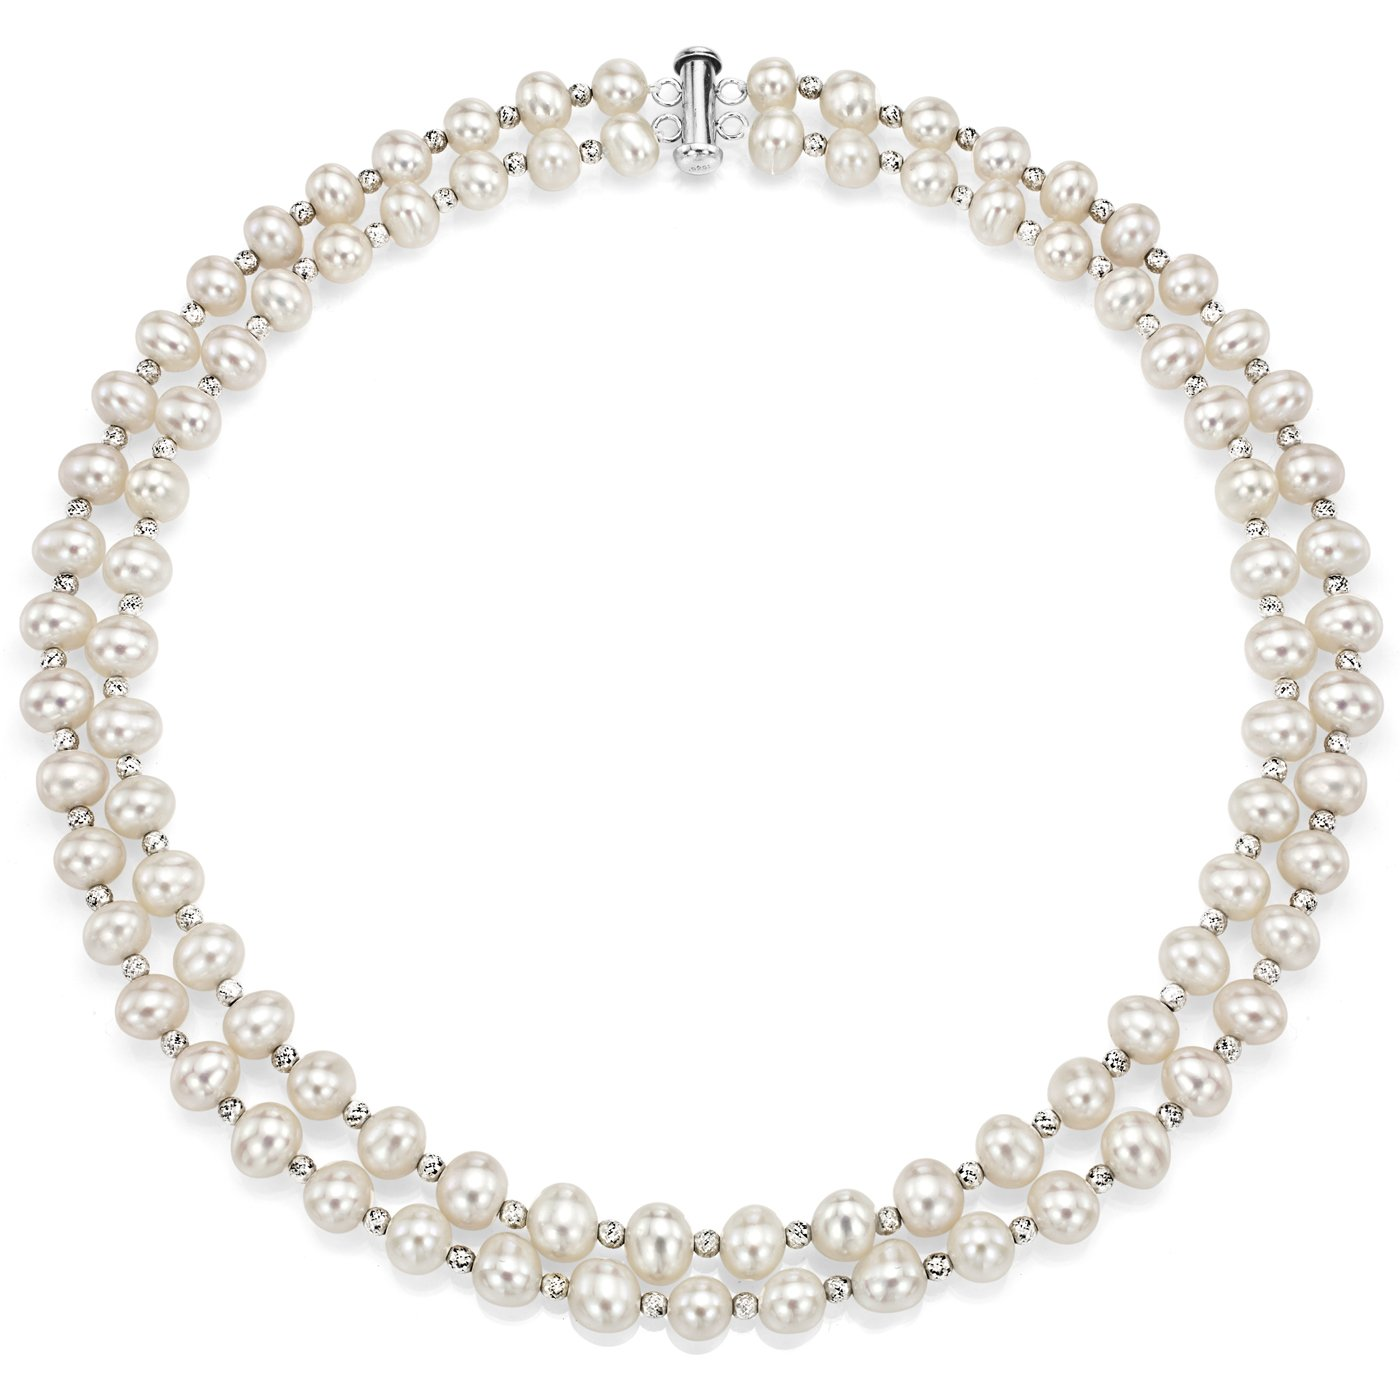 Sterling Silver 7-7.5mm White Freshwater Cultured Pearl 2-rows Necklace with Sparkling Beads, 17''